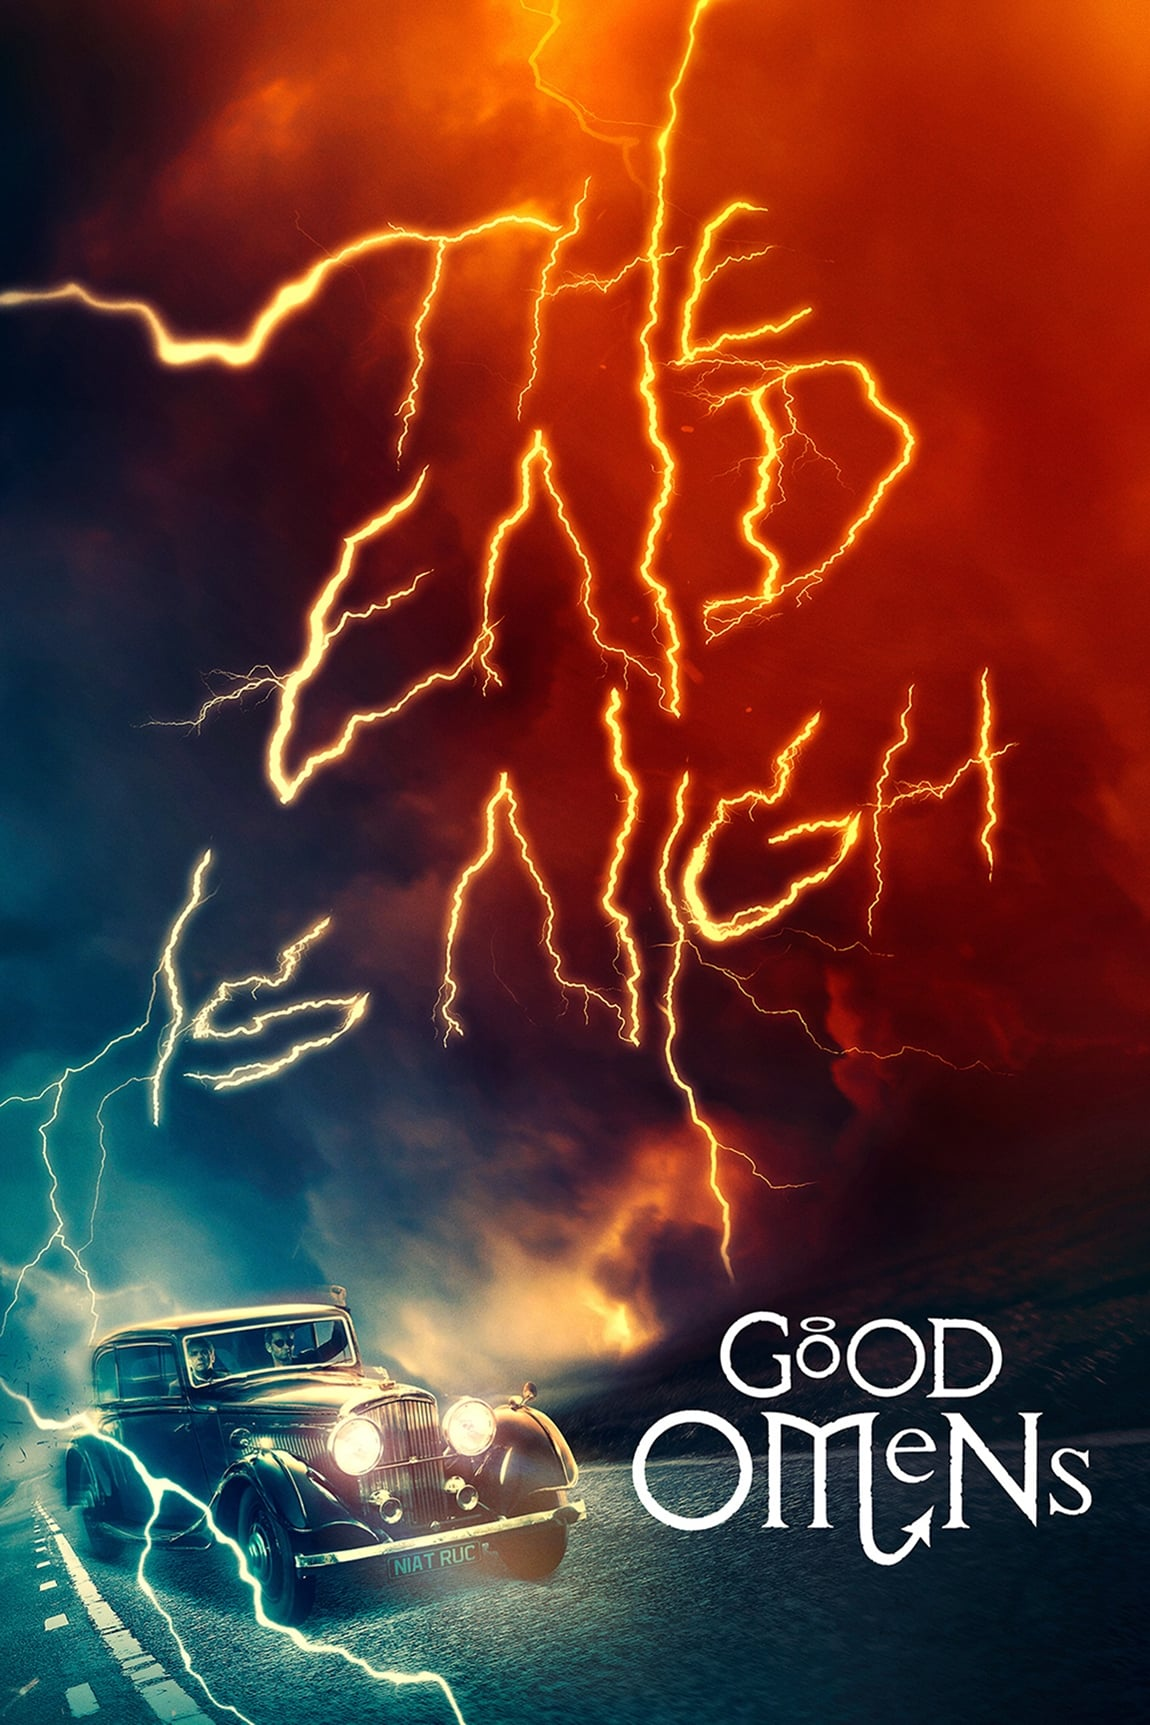 watch Good Omens series 2019 online free